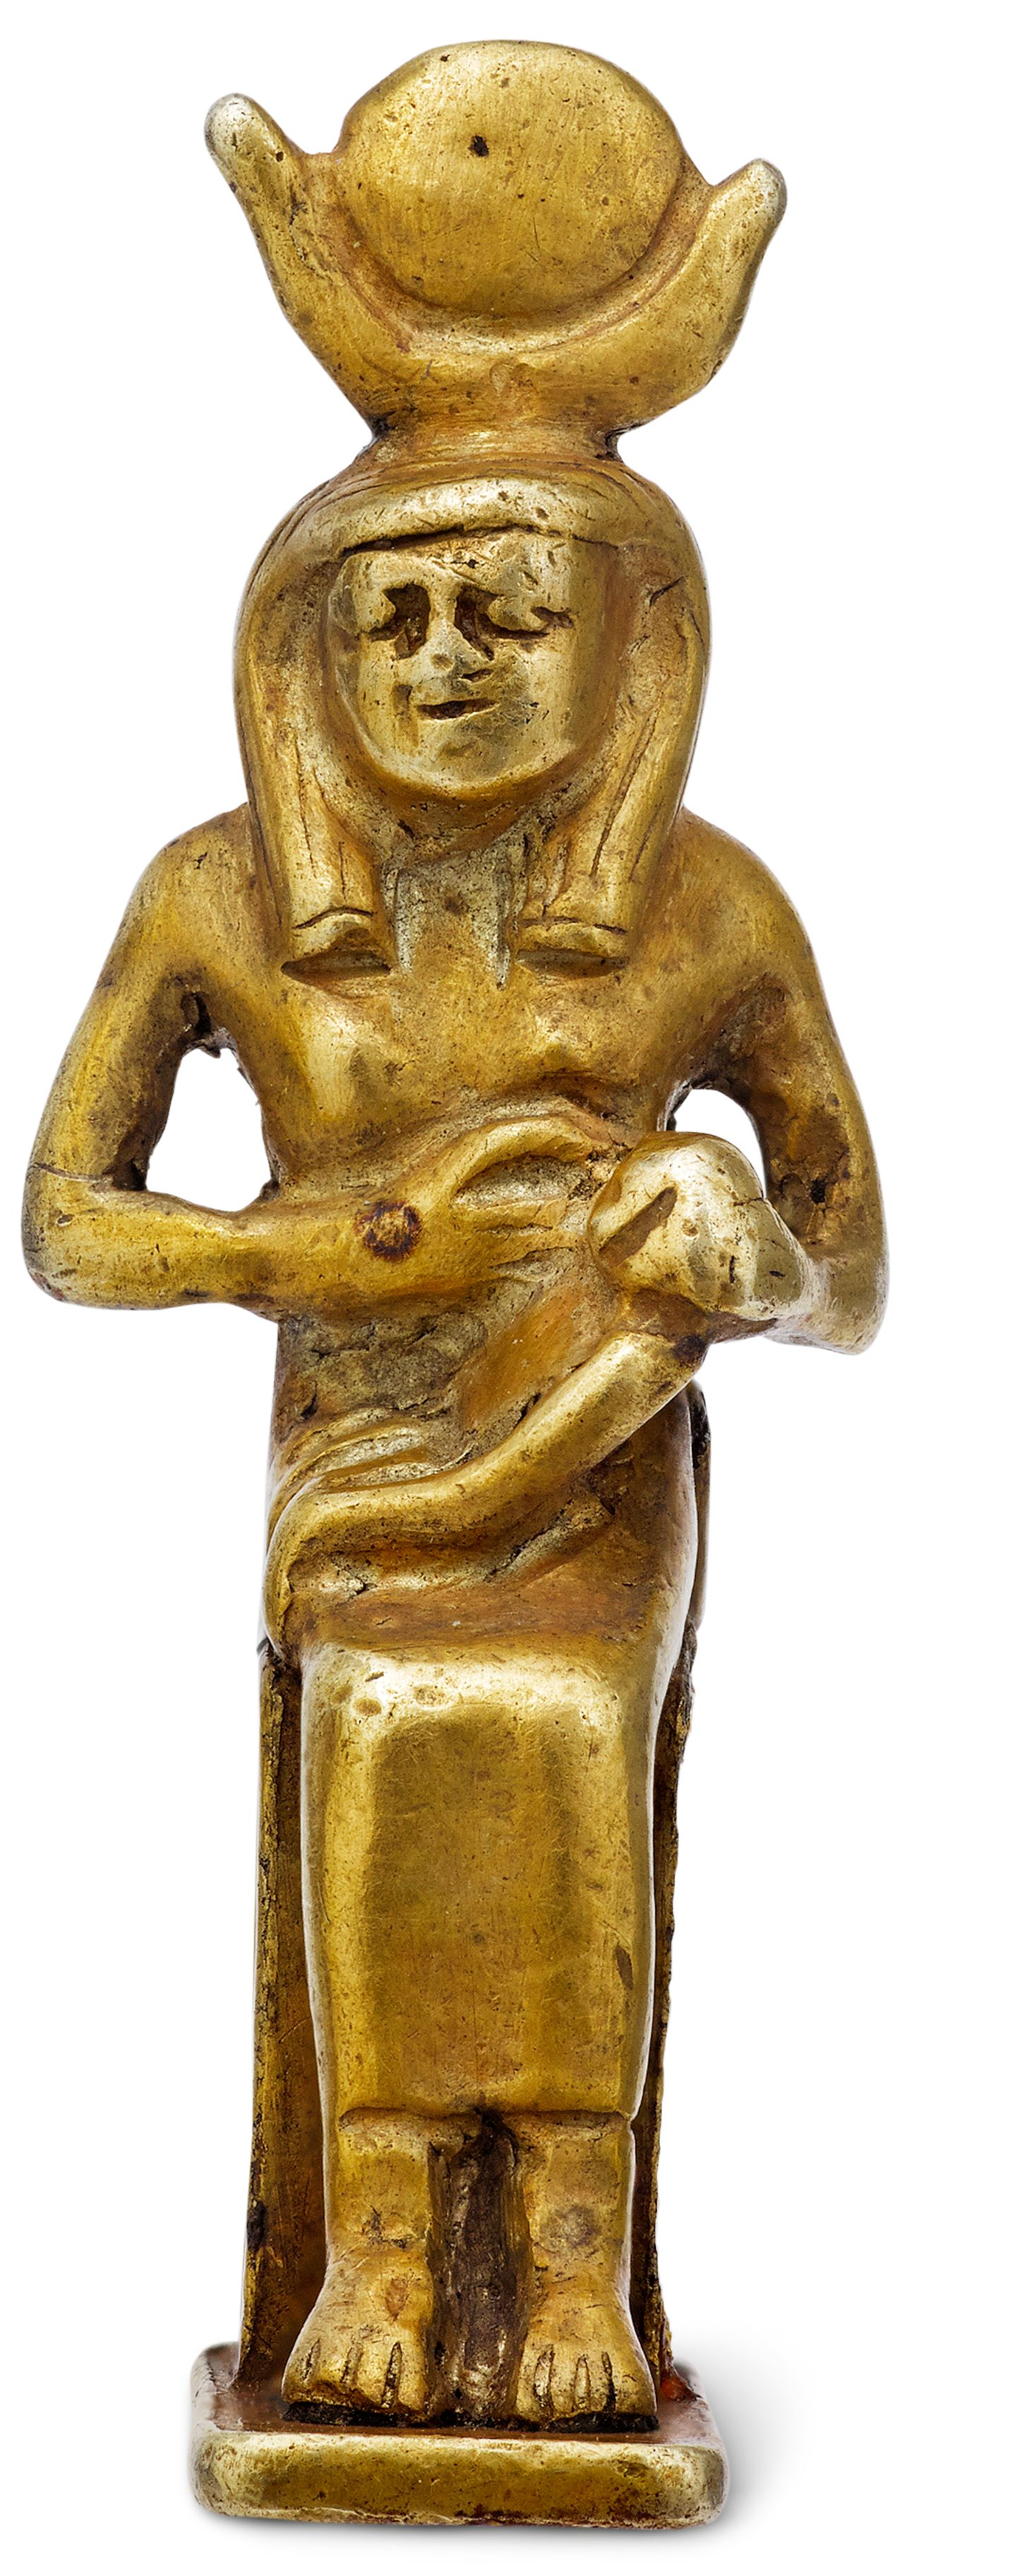 Egyptian God Isis   Ancient Egypt History   DK Find Out